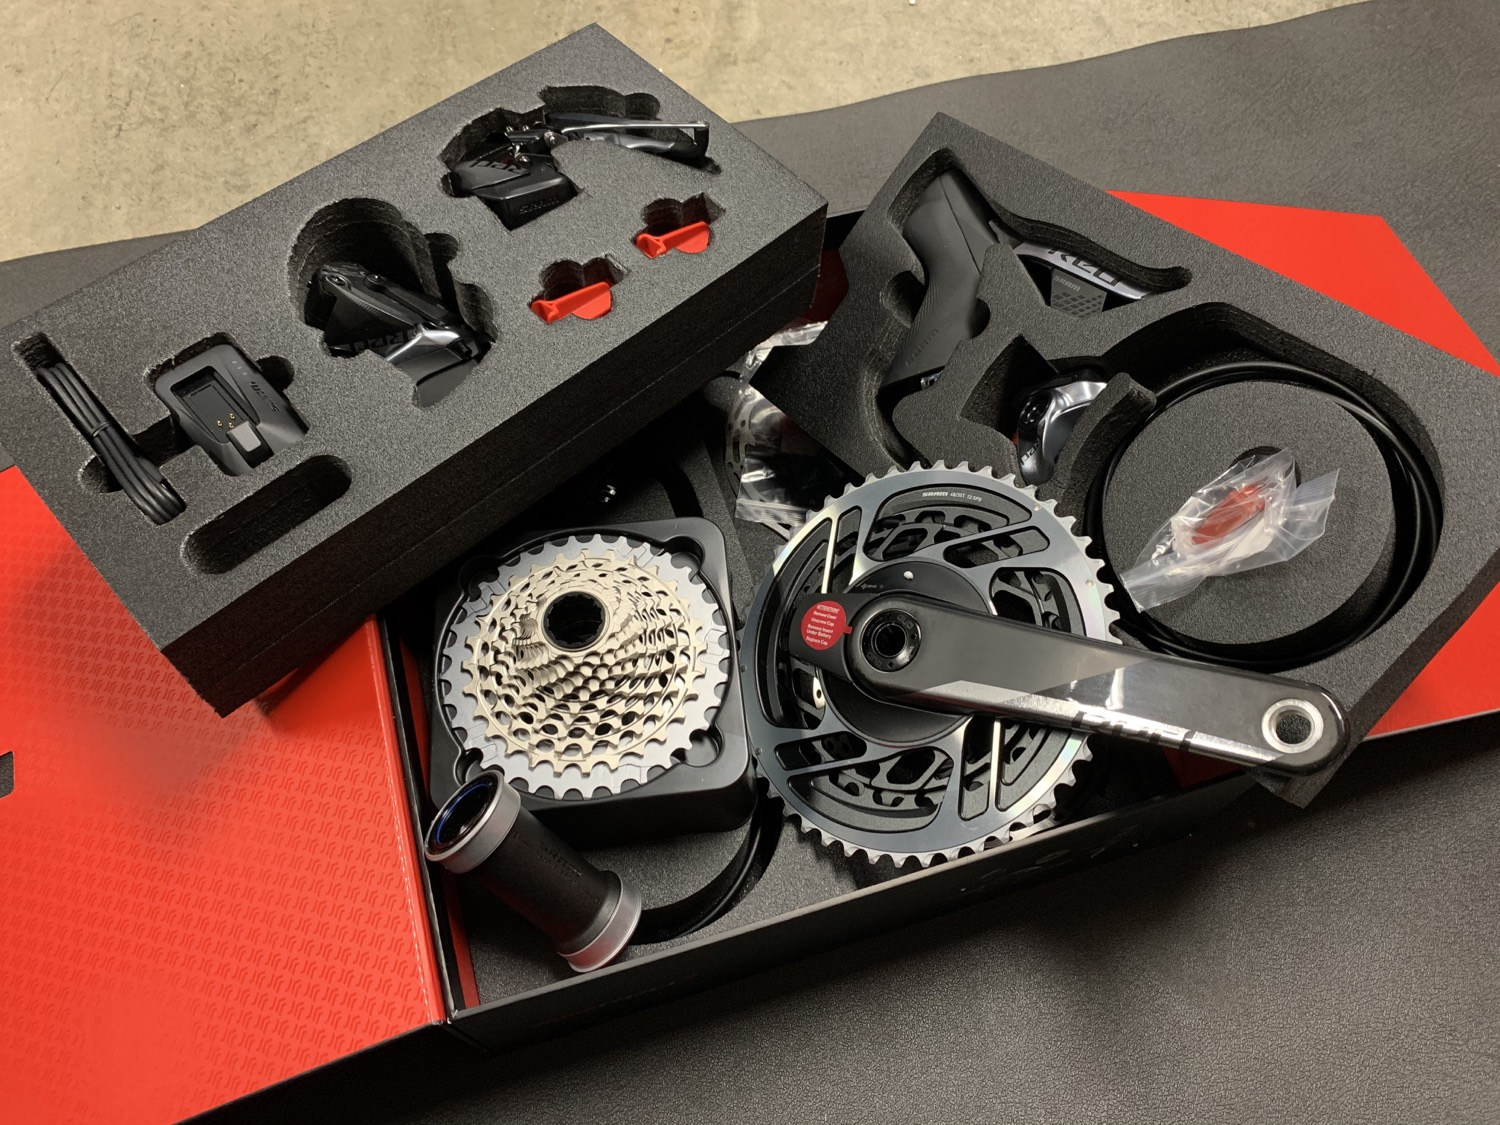 sram red axs groupset